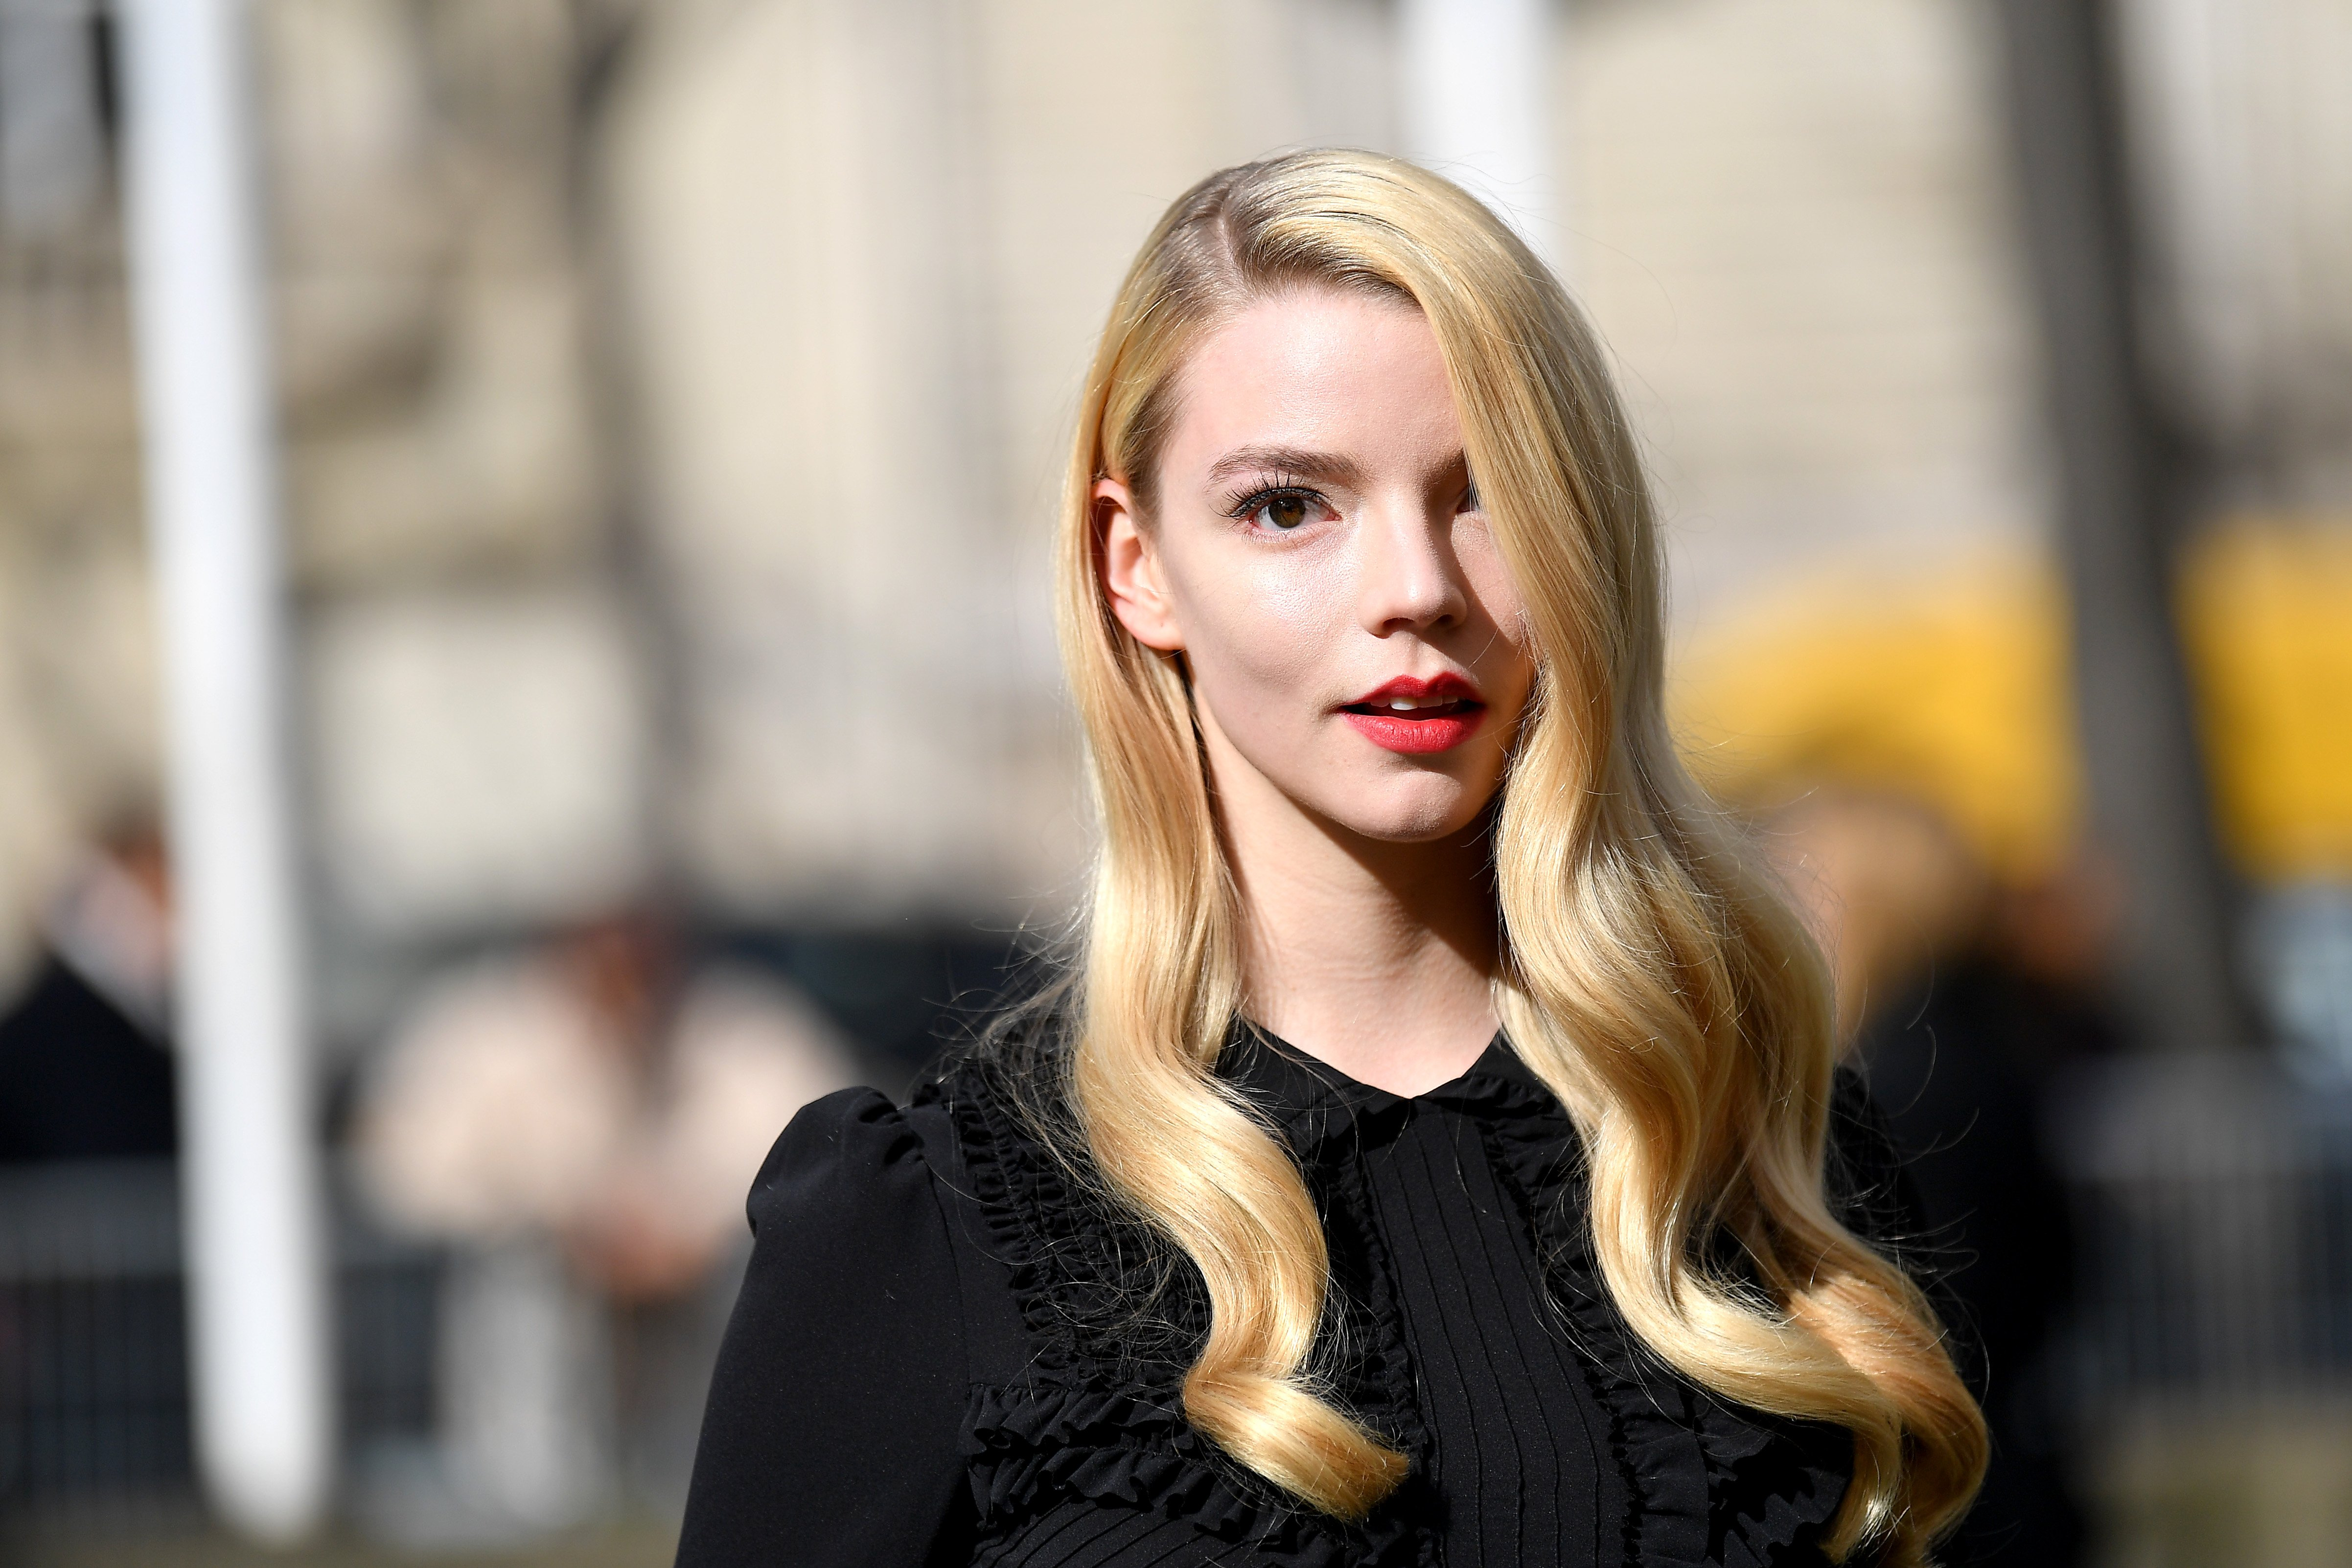 Anya Taylor-Joy attends the Paris Fashion Week on March 3, 2020 in Paris, France.   Photo: Getty Images